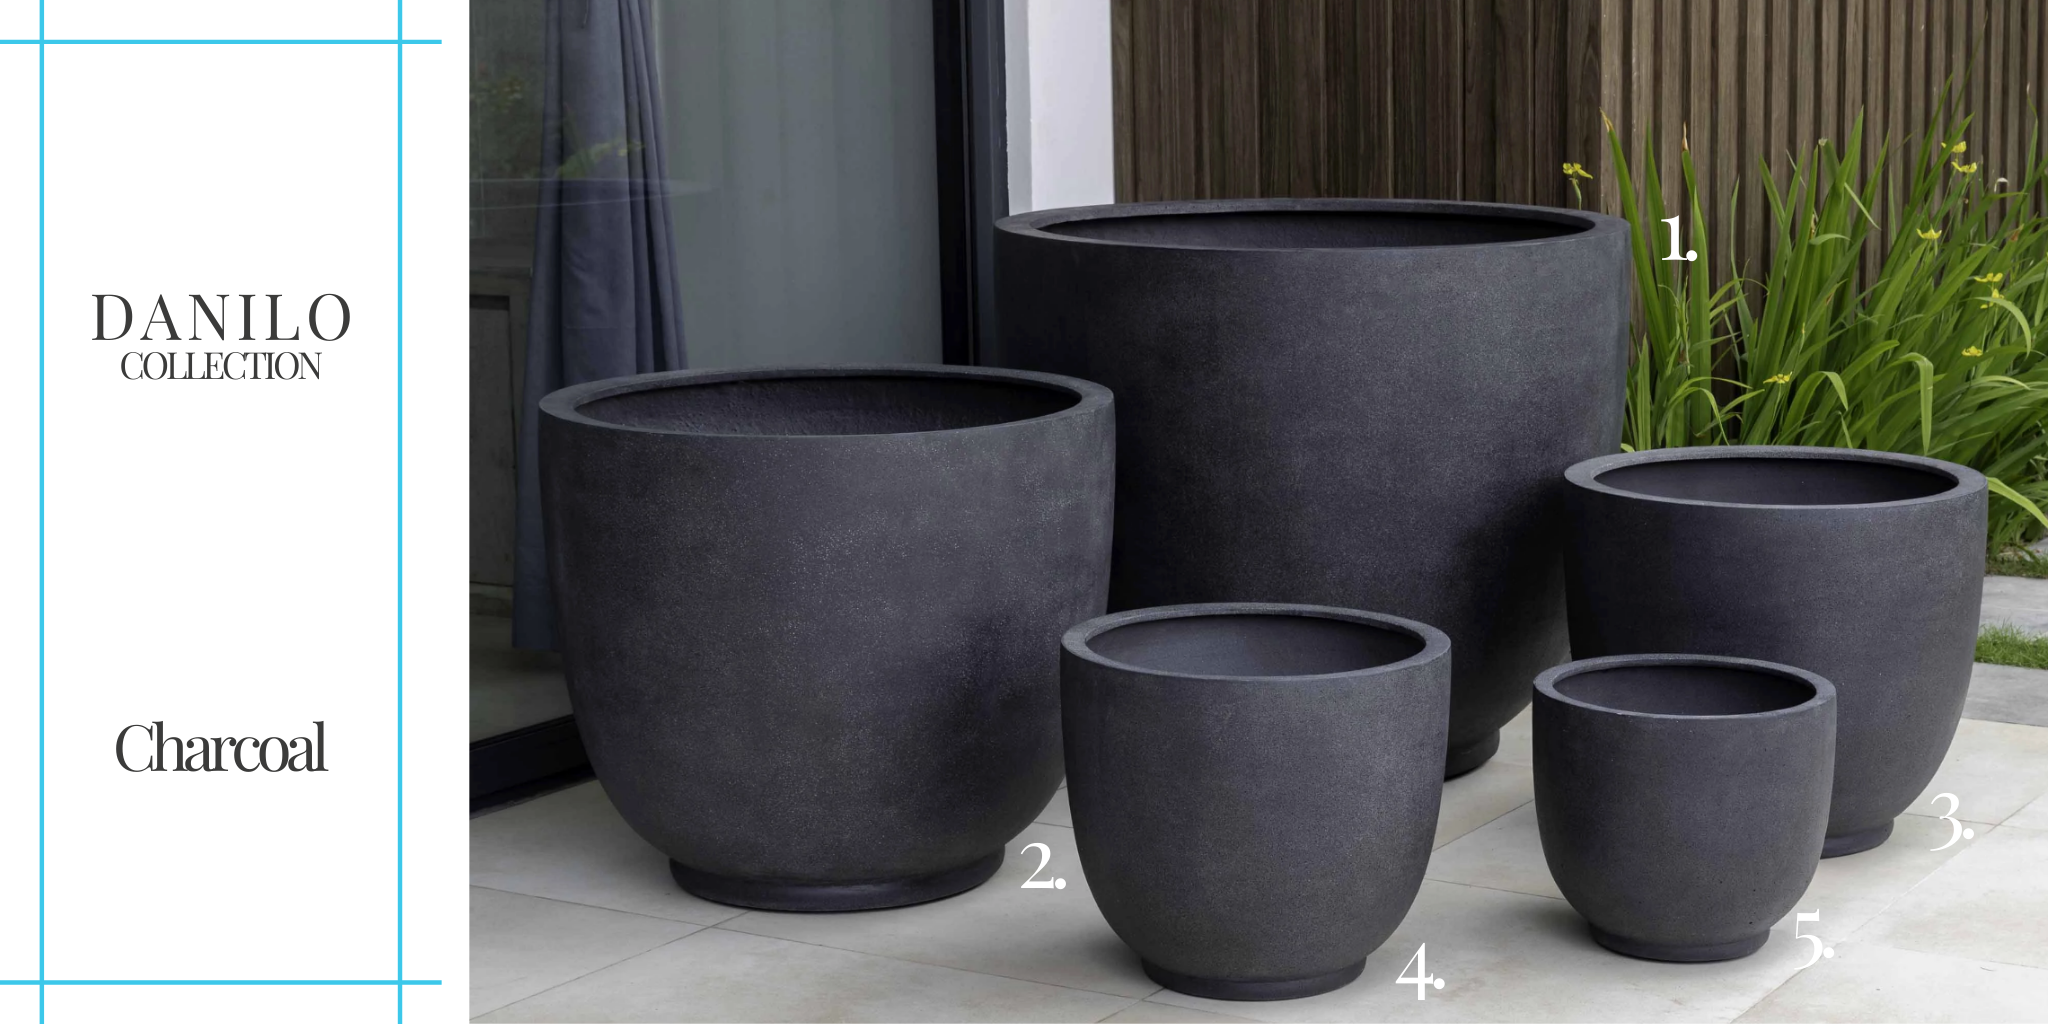 danilo-collection-charcoal planters campania